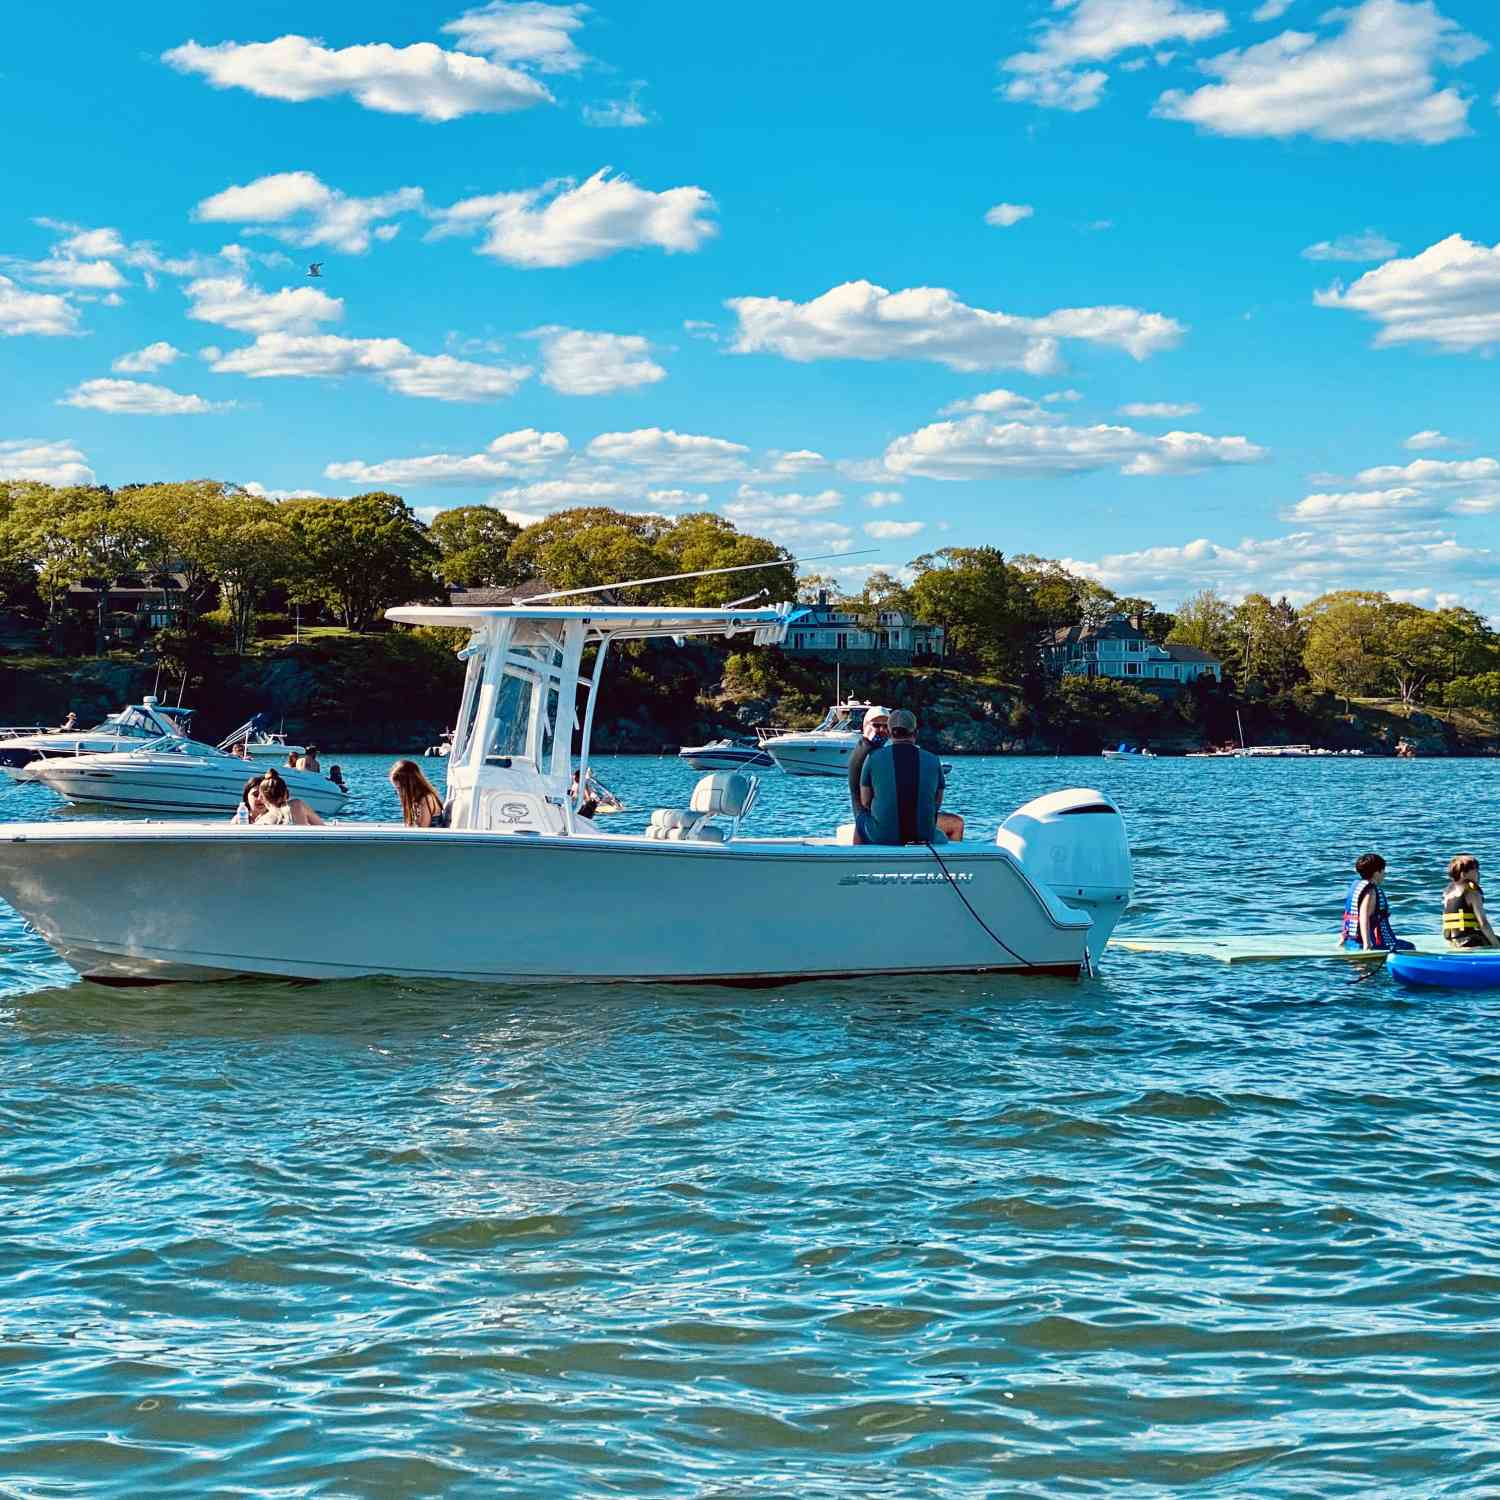 Title: Early summer fun - On board their Sportsman Heritage 231 Center Console - Location: Manchester-by-the-Sea, Massachusetts. Participating in the Photo Contest #SportsmanJune2020